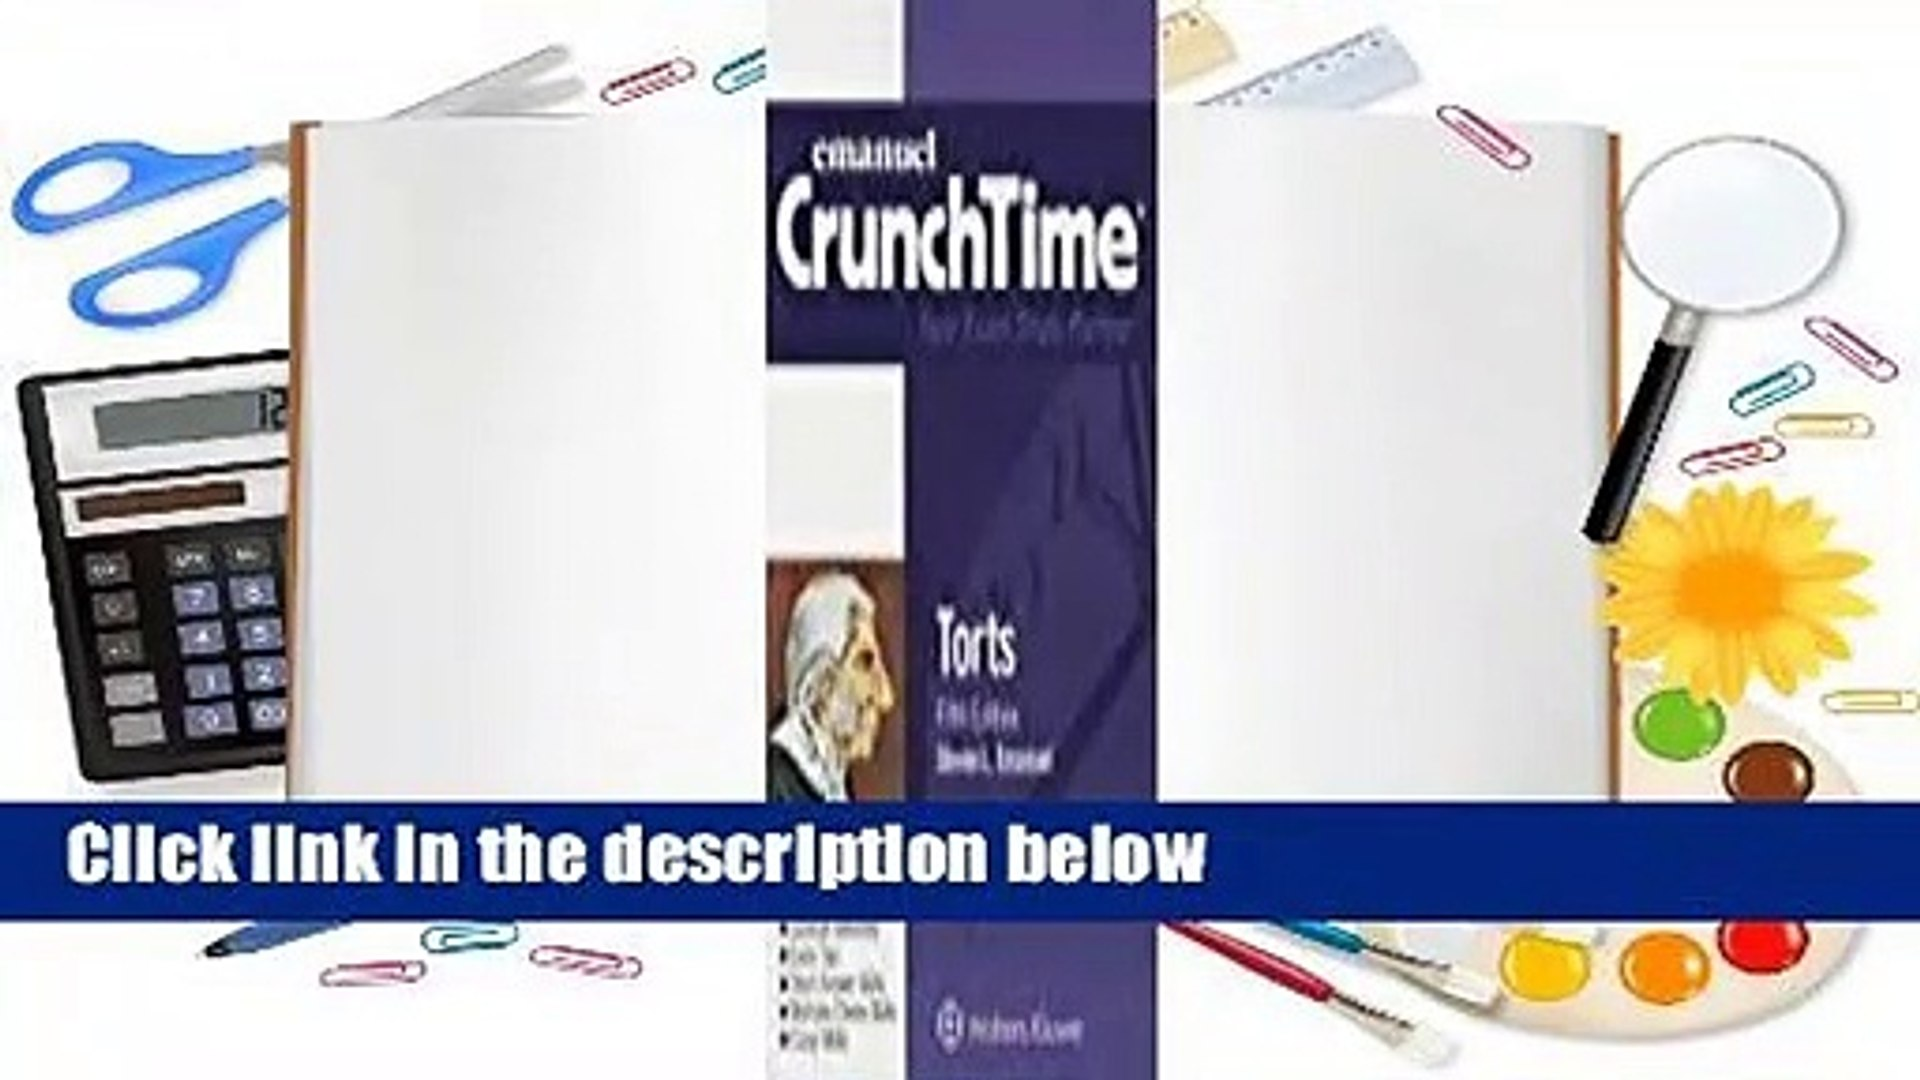 About For Books Torts (Emanuel CrunchTime) Complete